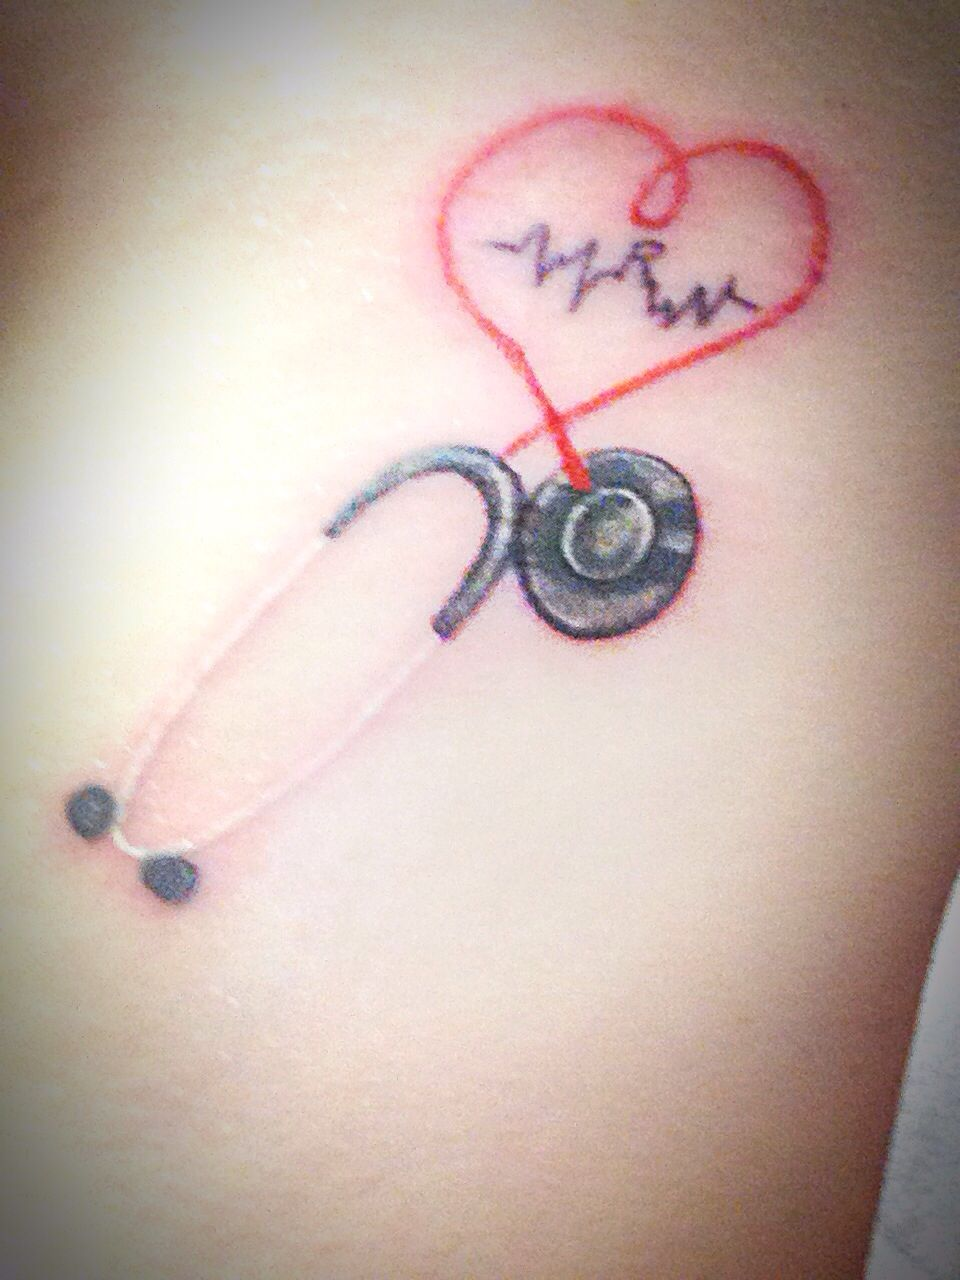 Tattoos tattoo ideas on pinterest rn - Tattoo Designs I M Not A Nurse But If I Was I Would Have This